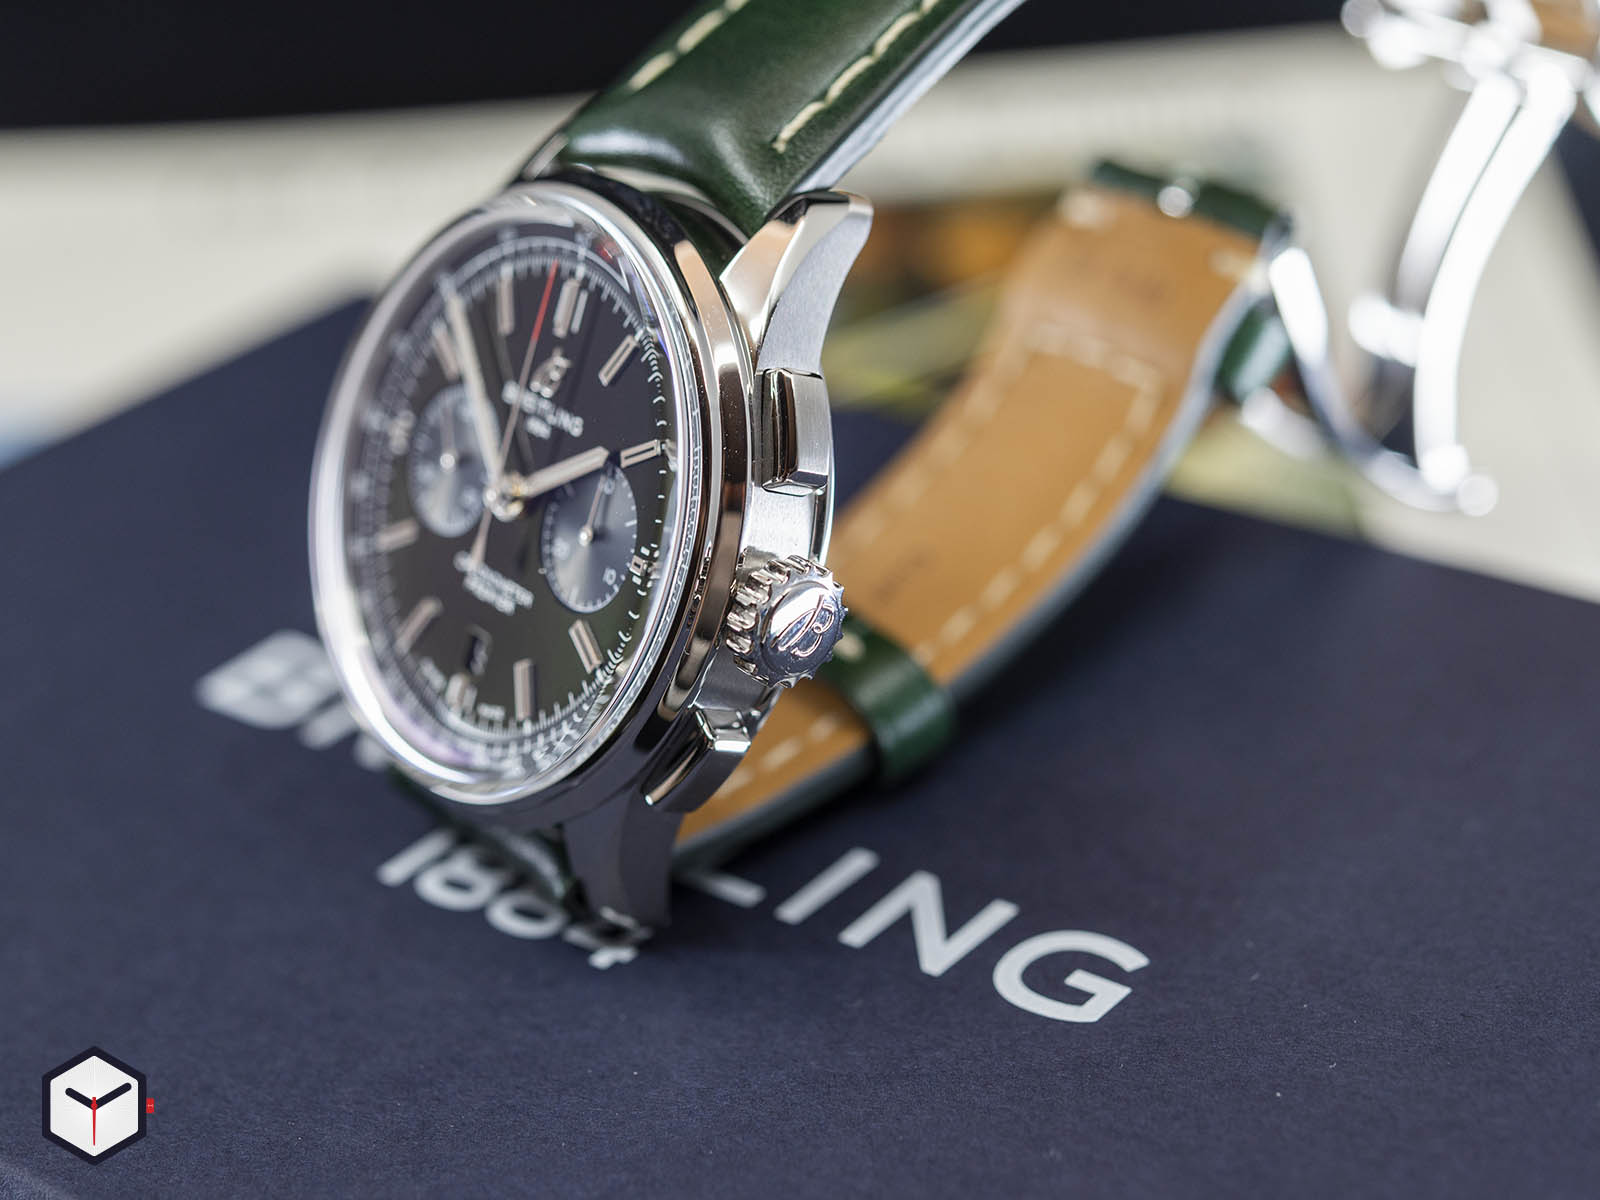 ab0118a11l1x1-breitling-premier-b01-chronograph-42-bentley-british-racing-green-4.jpg